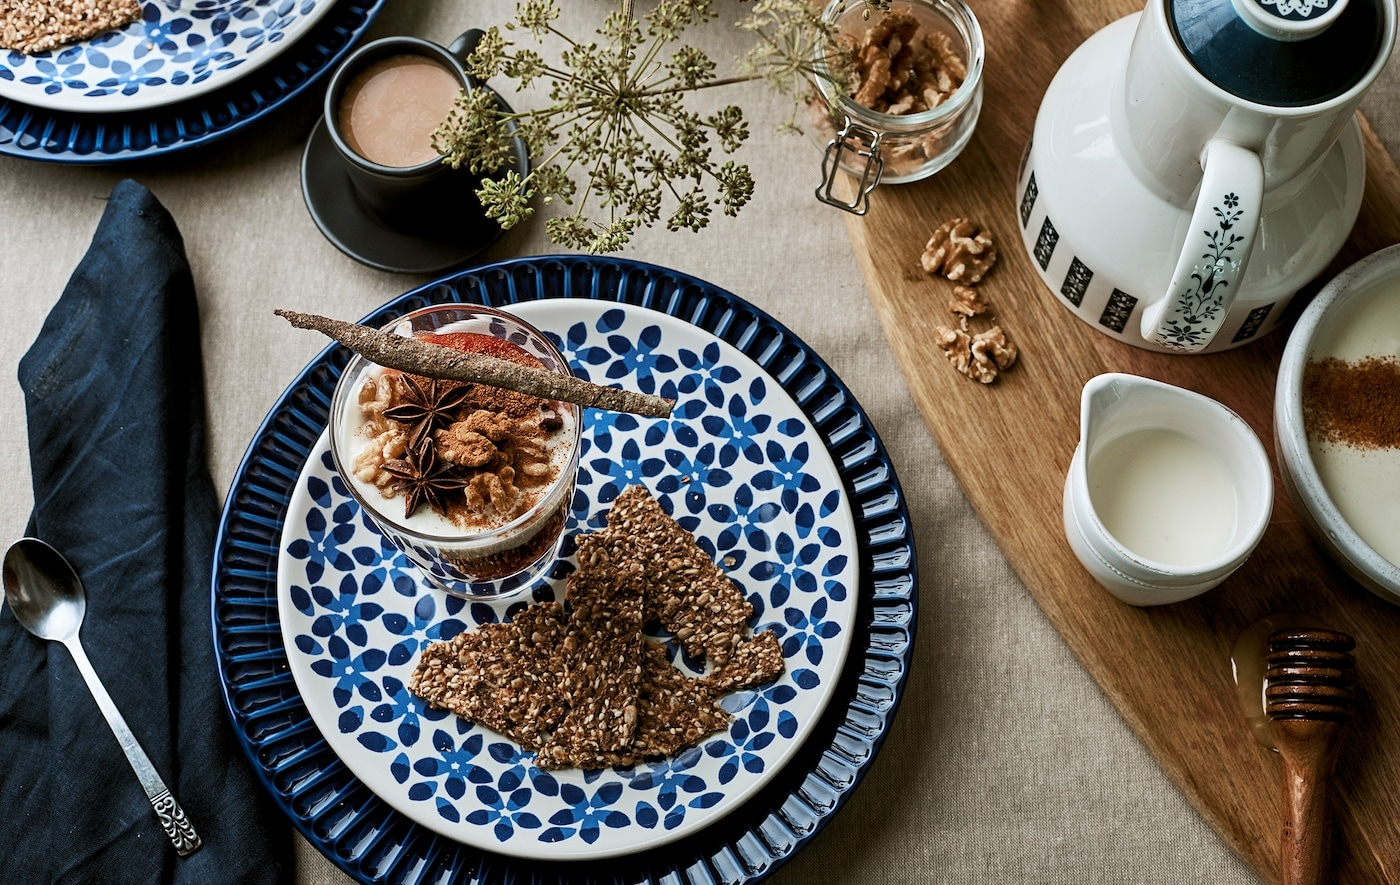 Breakfast table set with linen, patterned blue plates, granola in a glass and coffee accessories on a chopping board.